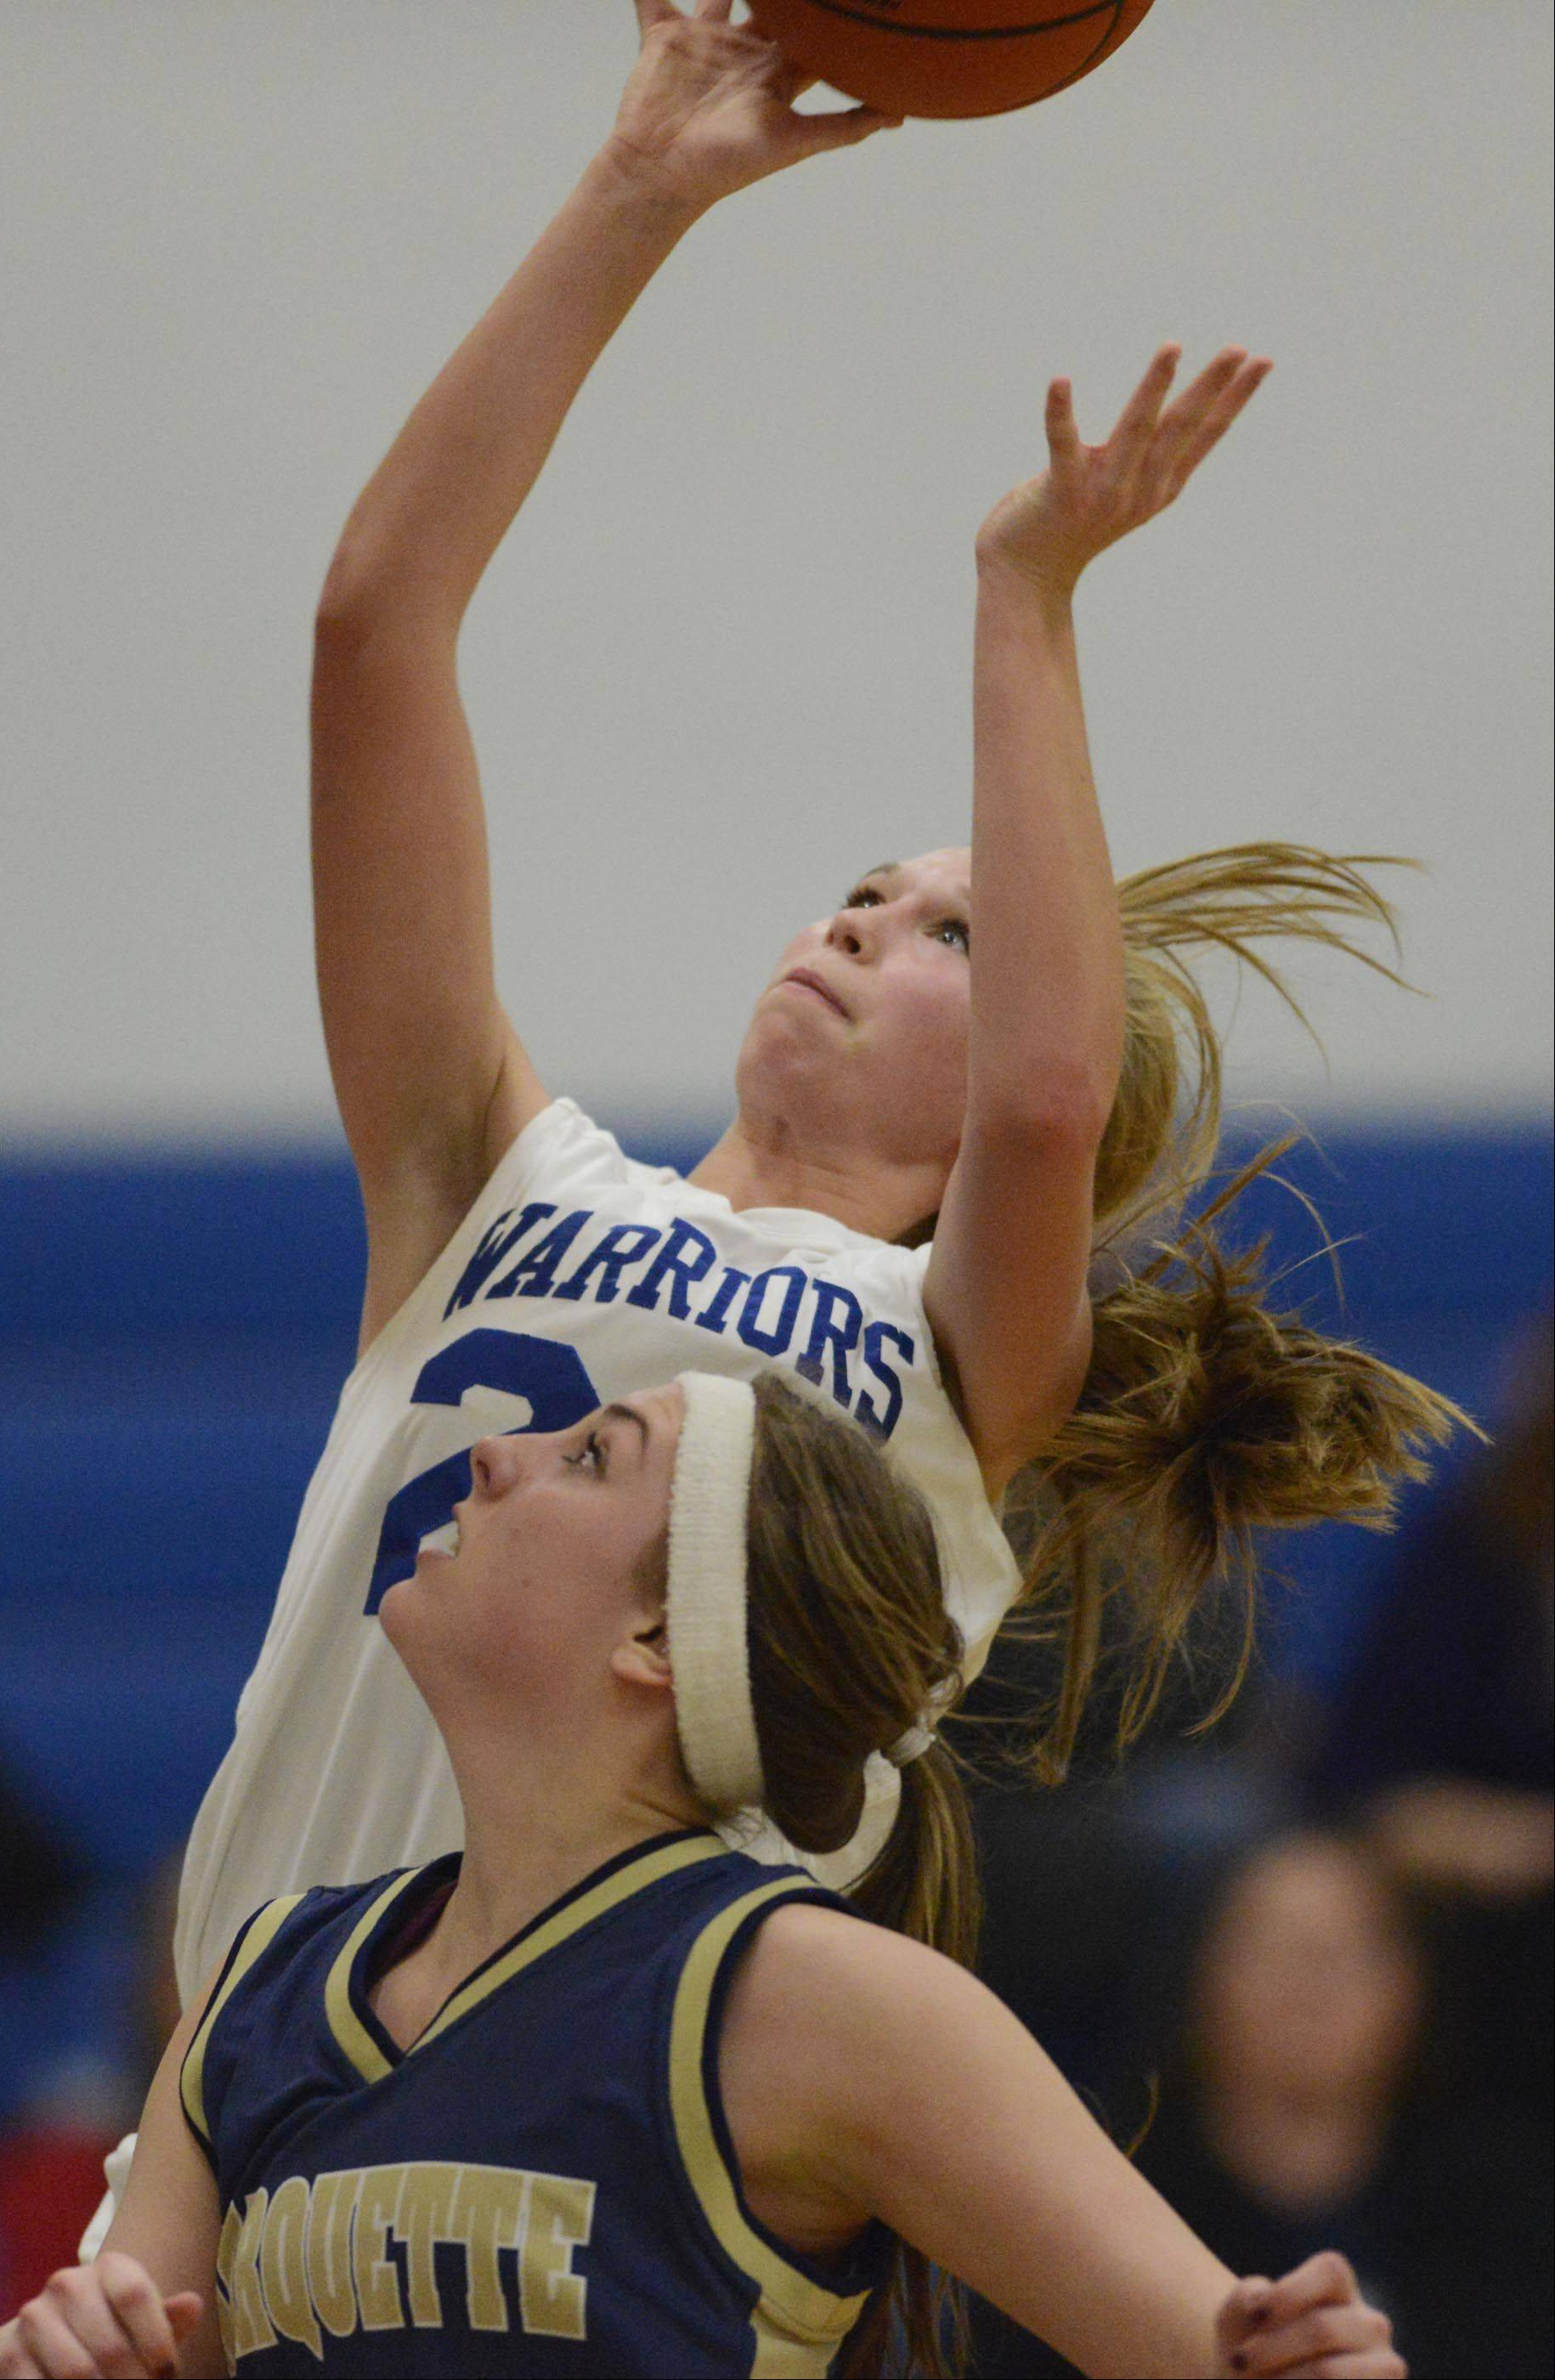 Westminster Christian's Kinsley Donahue lays up a basket against Ottawa Marquette Academy Tuesday in Elgin.